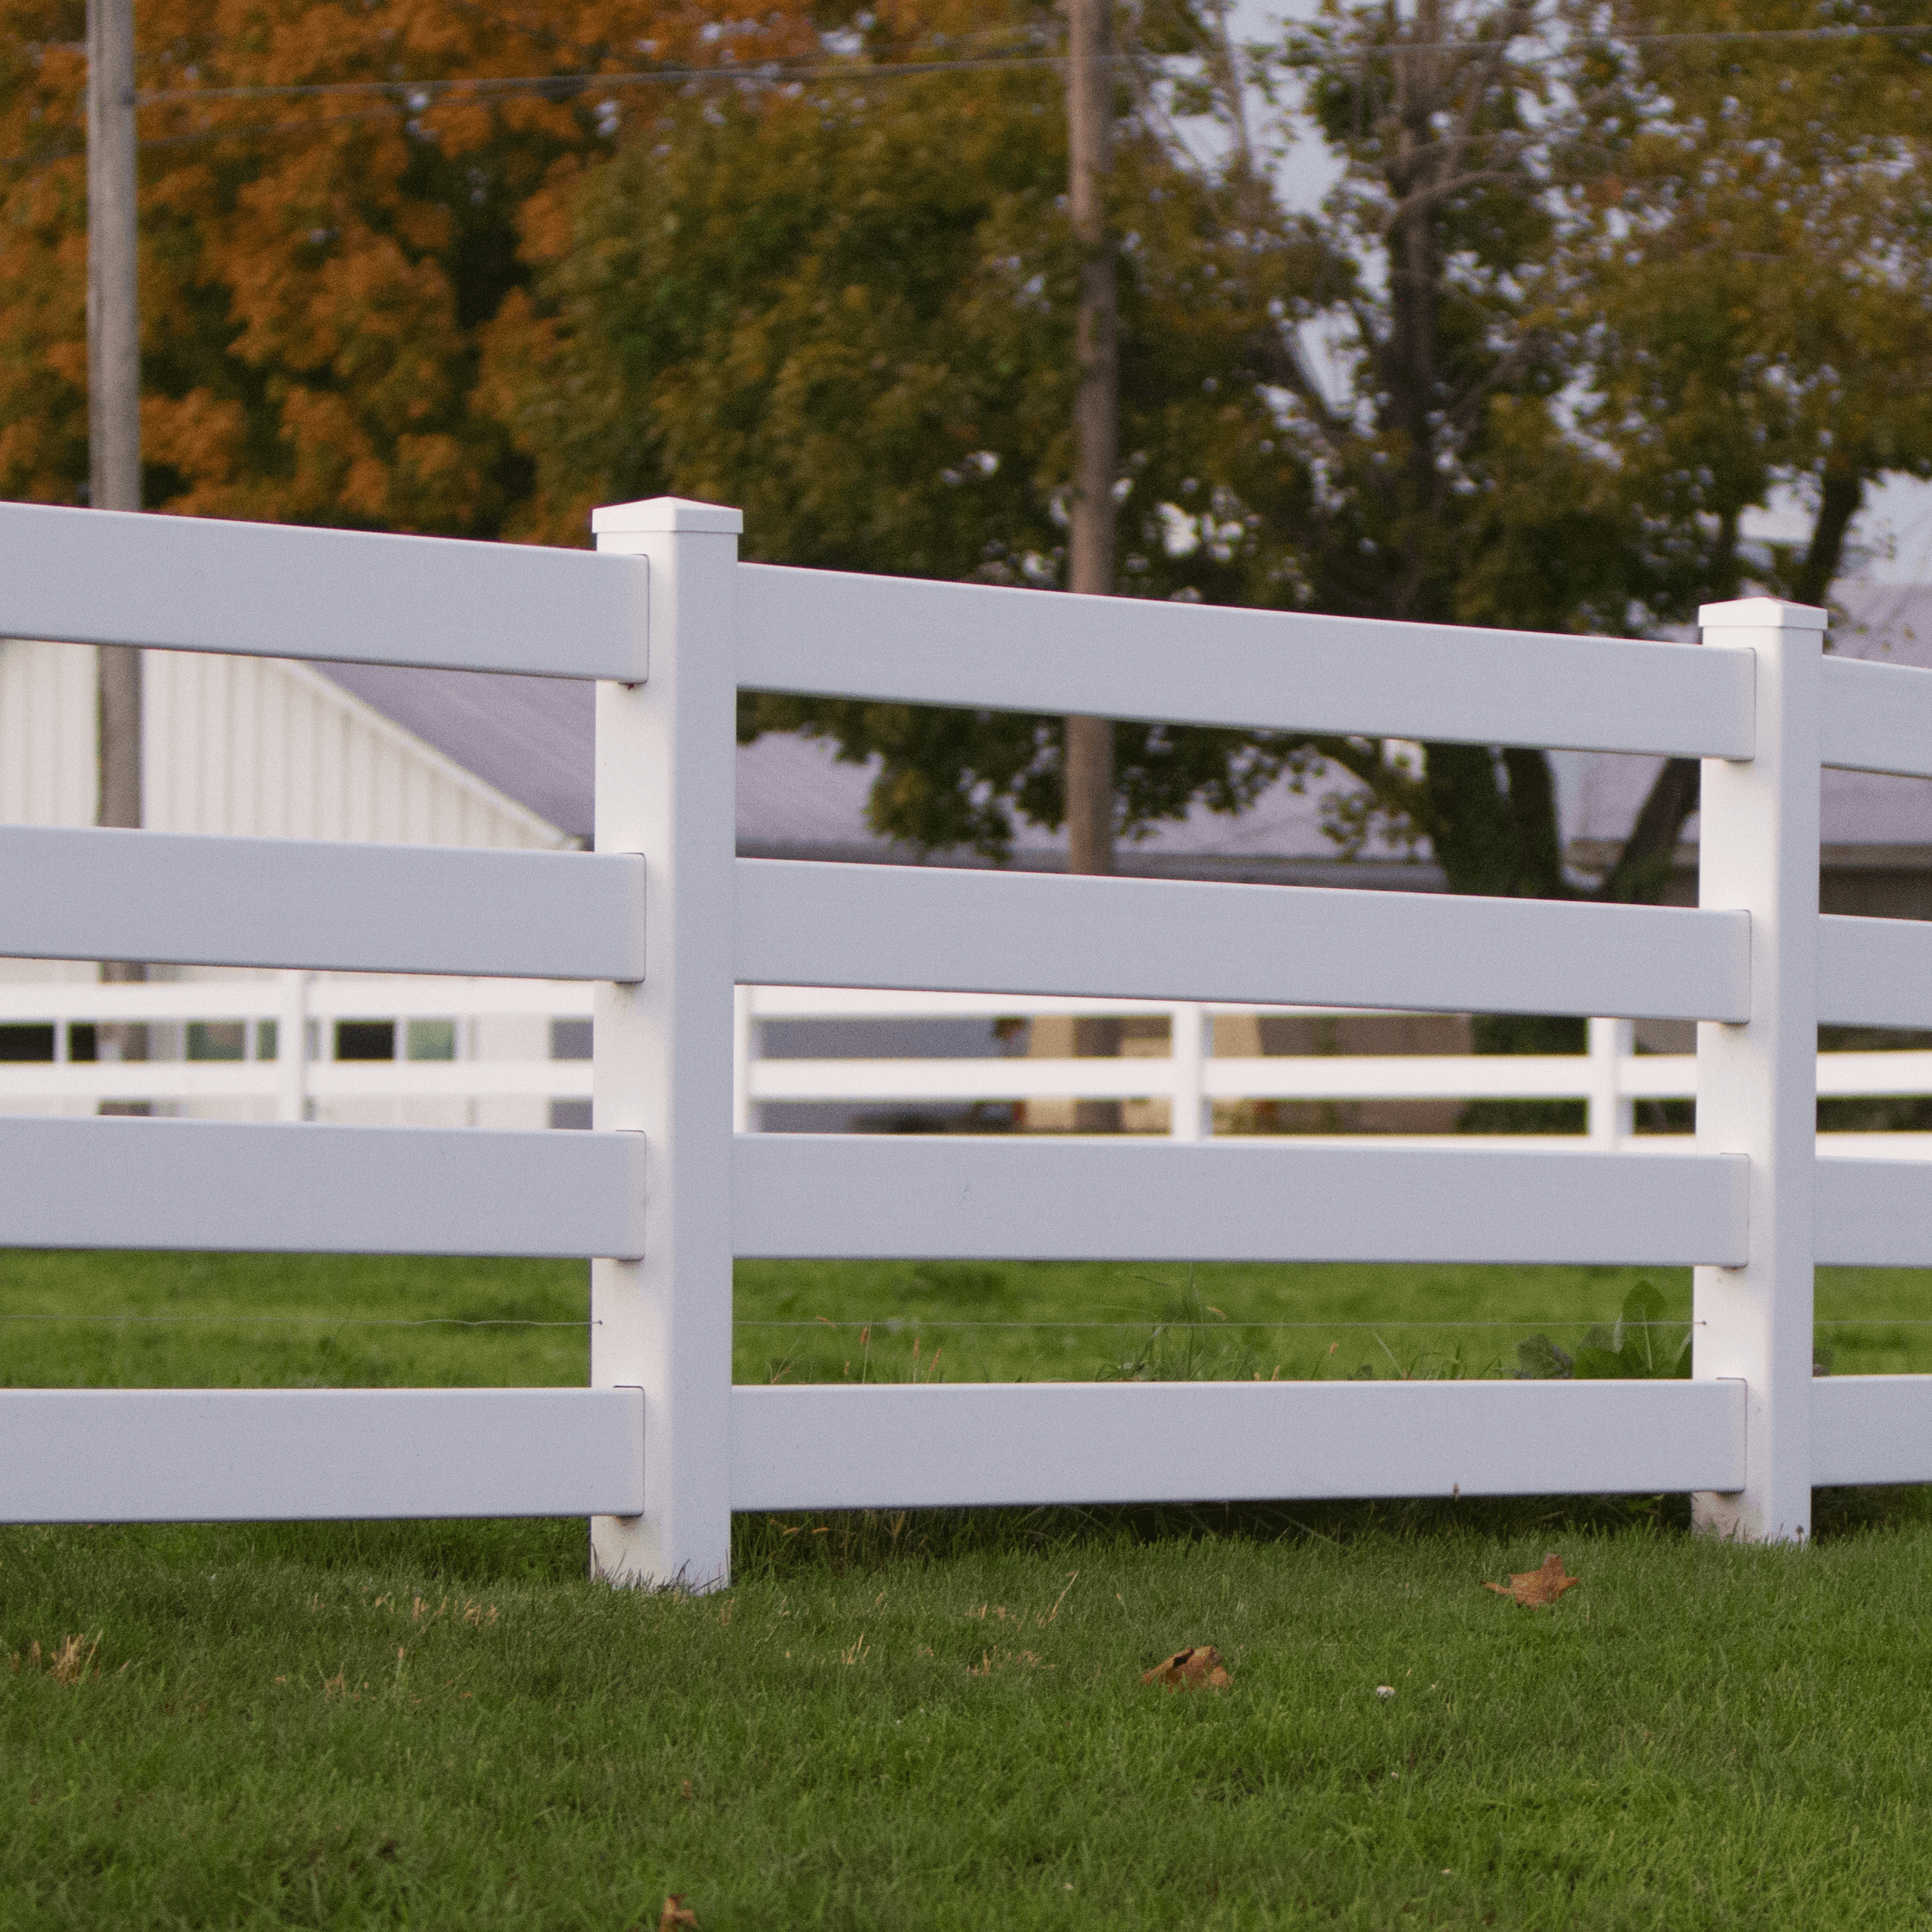 Vinyl Post & Rail Fencing - 4 Rail Vinyl Fence - Superior Plastic Products